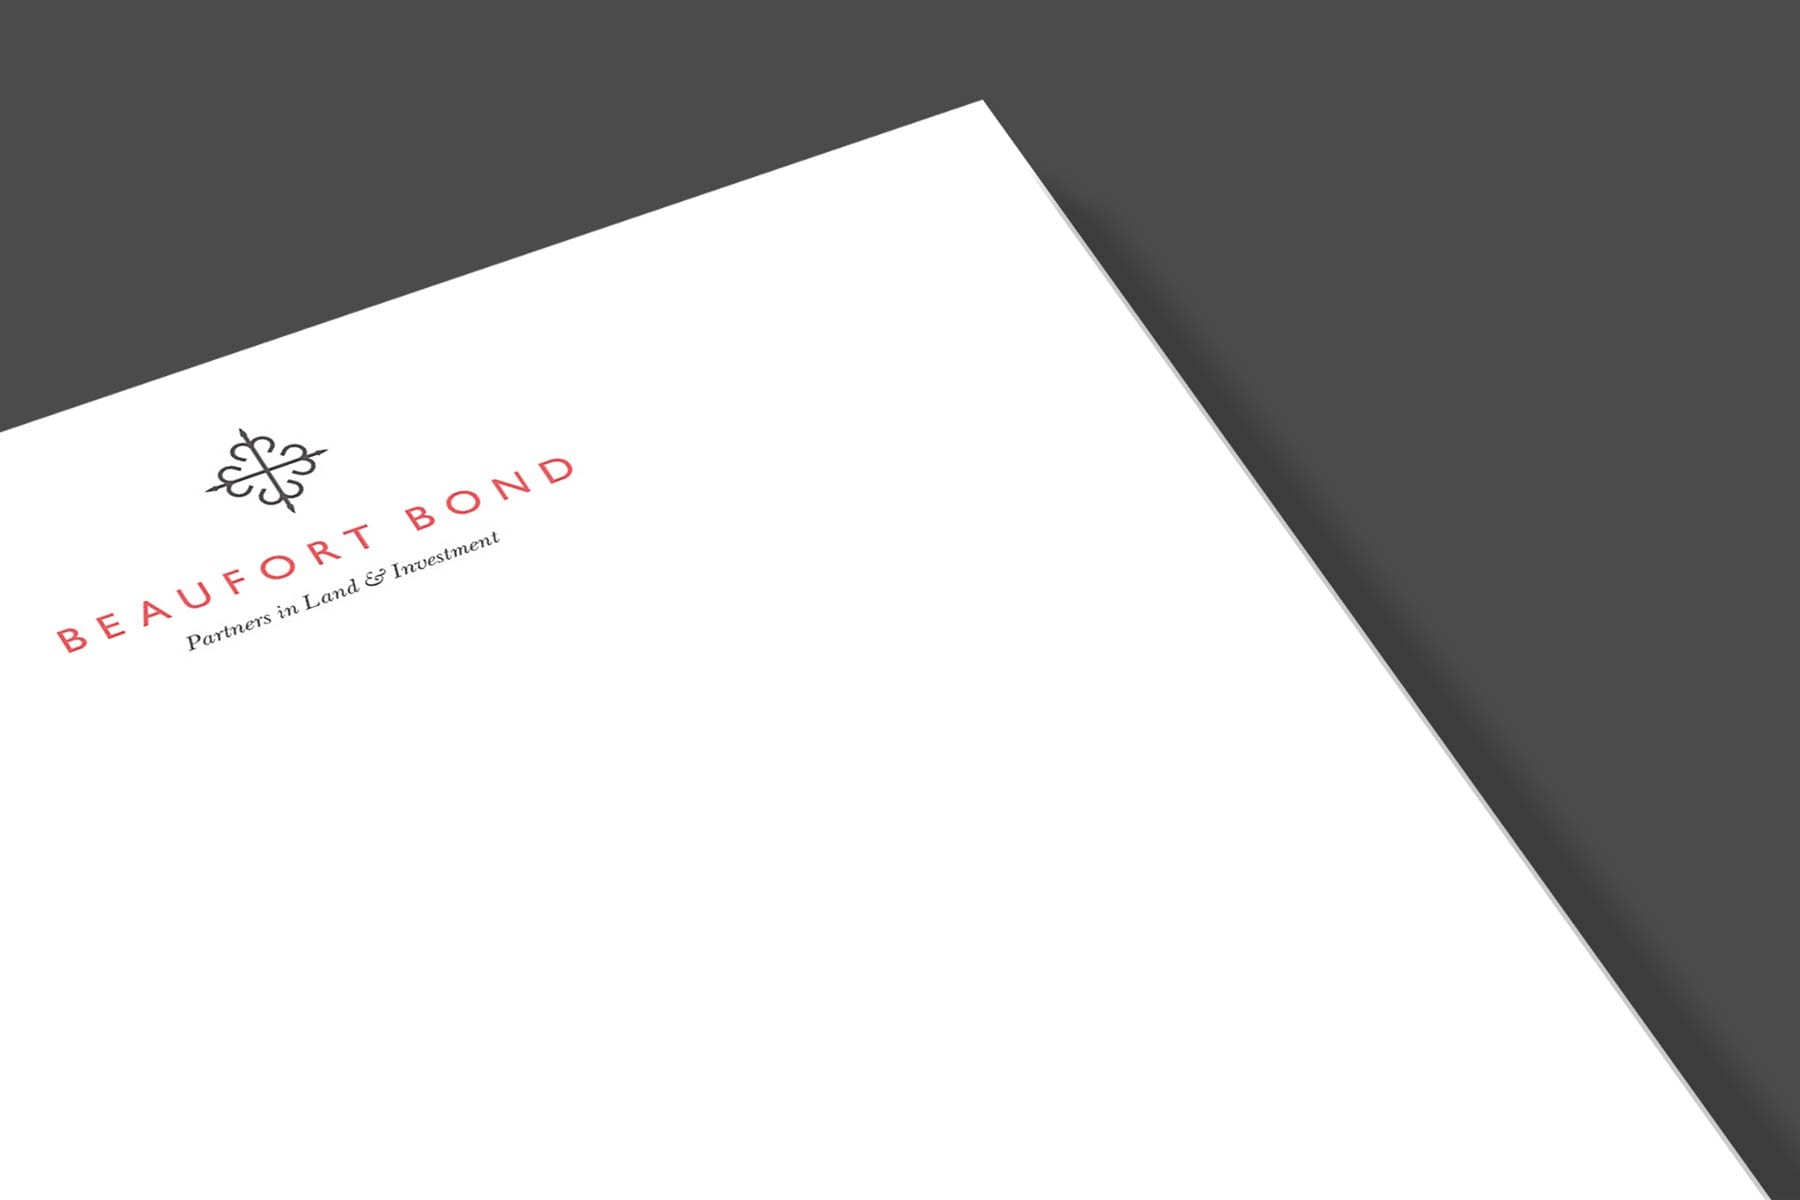 Beauford Bond stationery